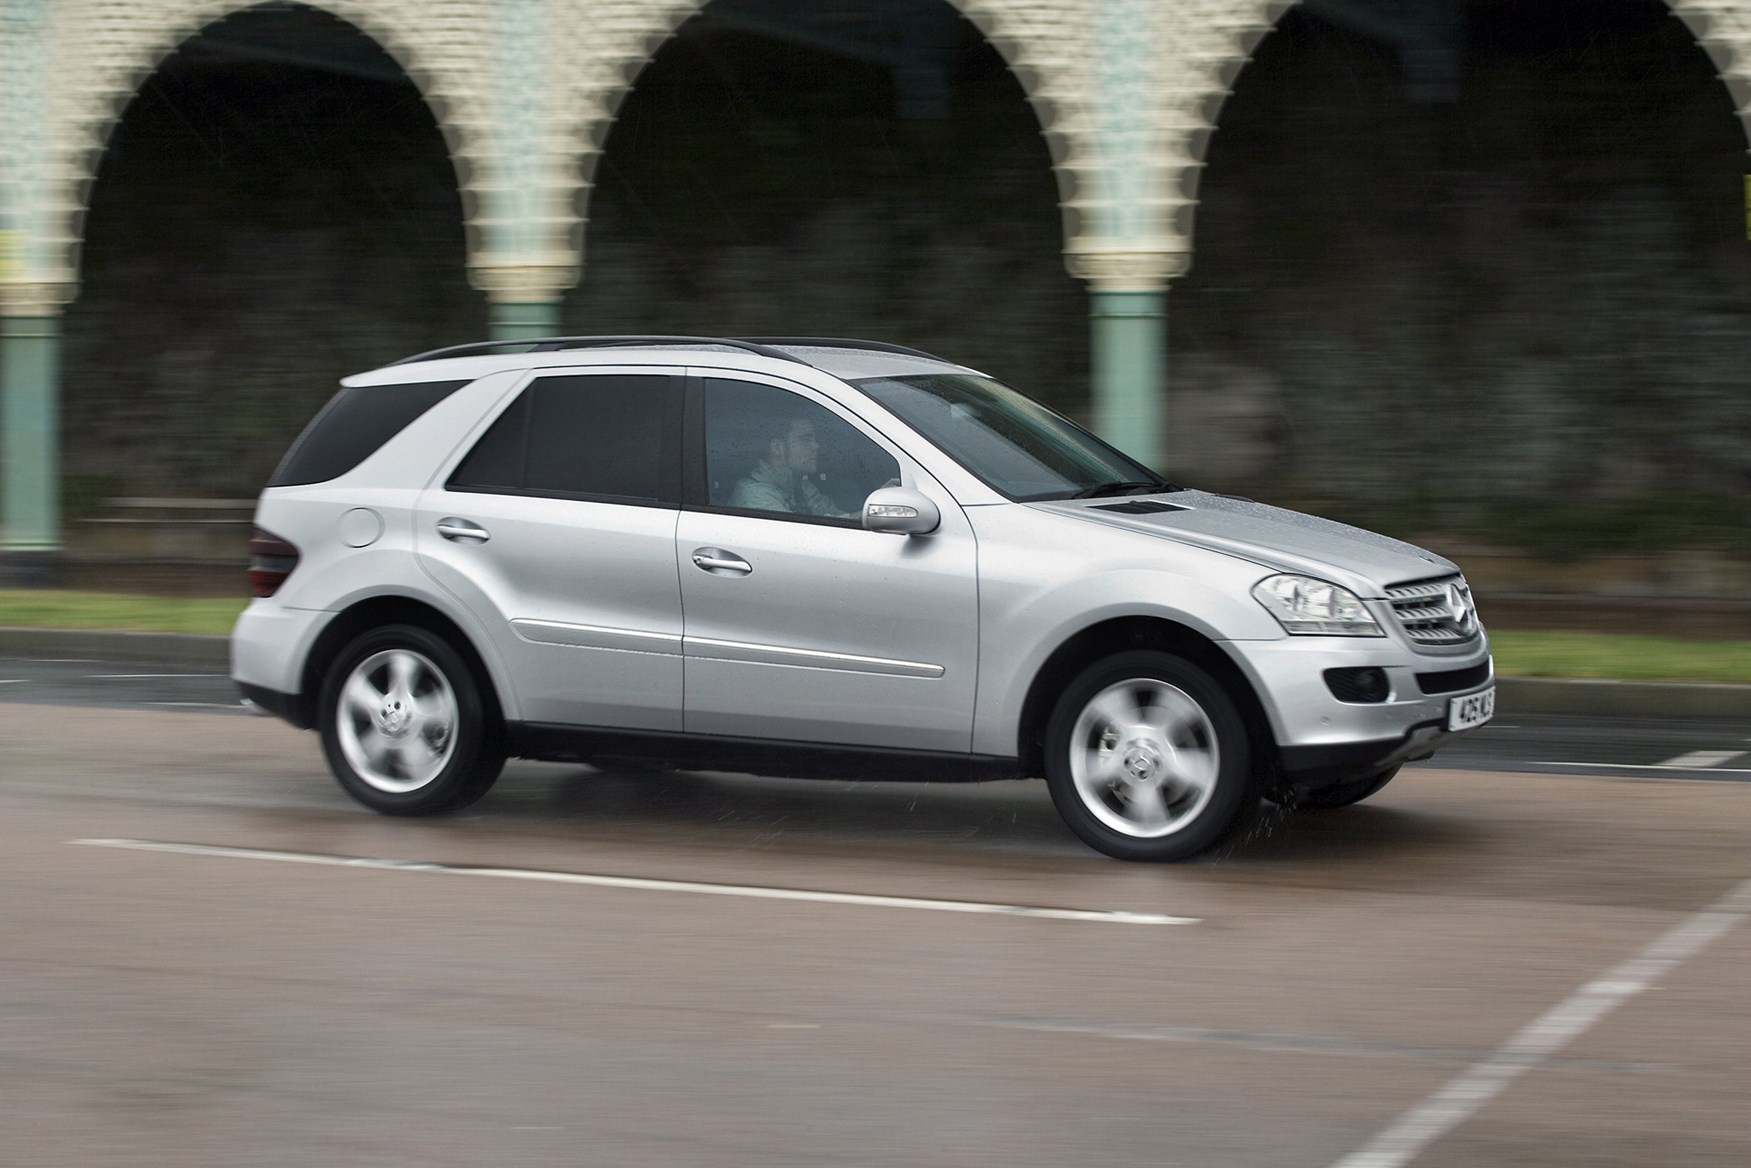 Mercedes benz m class hatchback review 2005 2011 parkers for Mercedes benz ml350 accessories